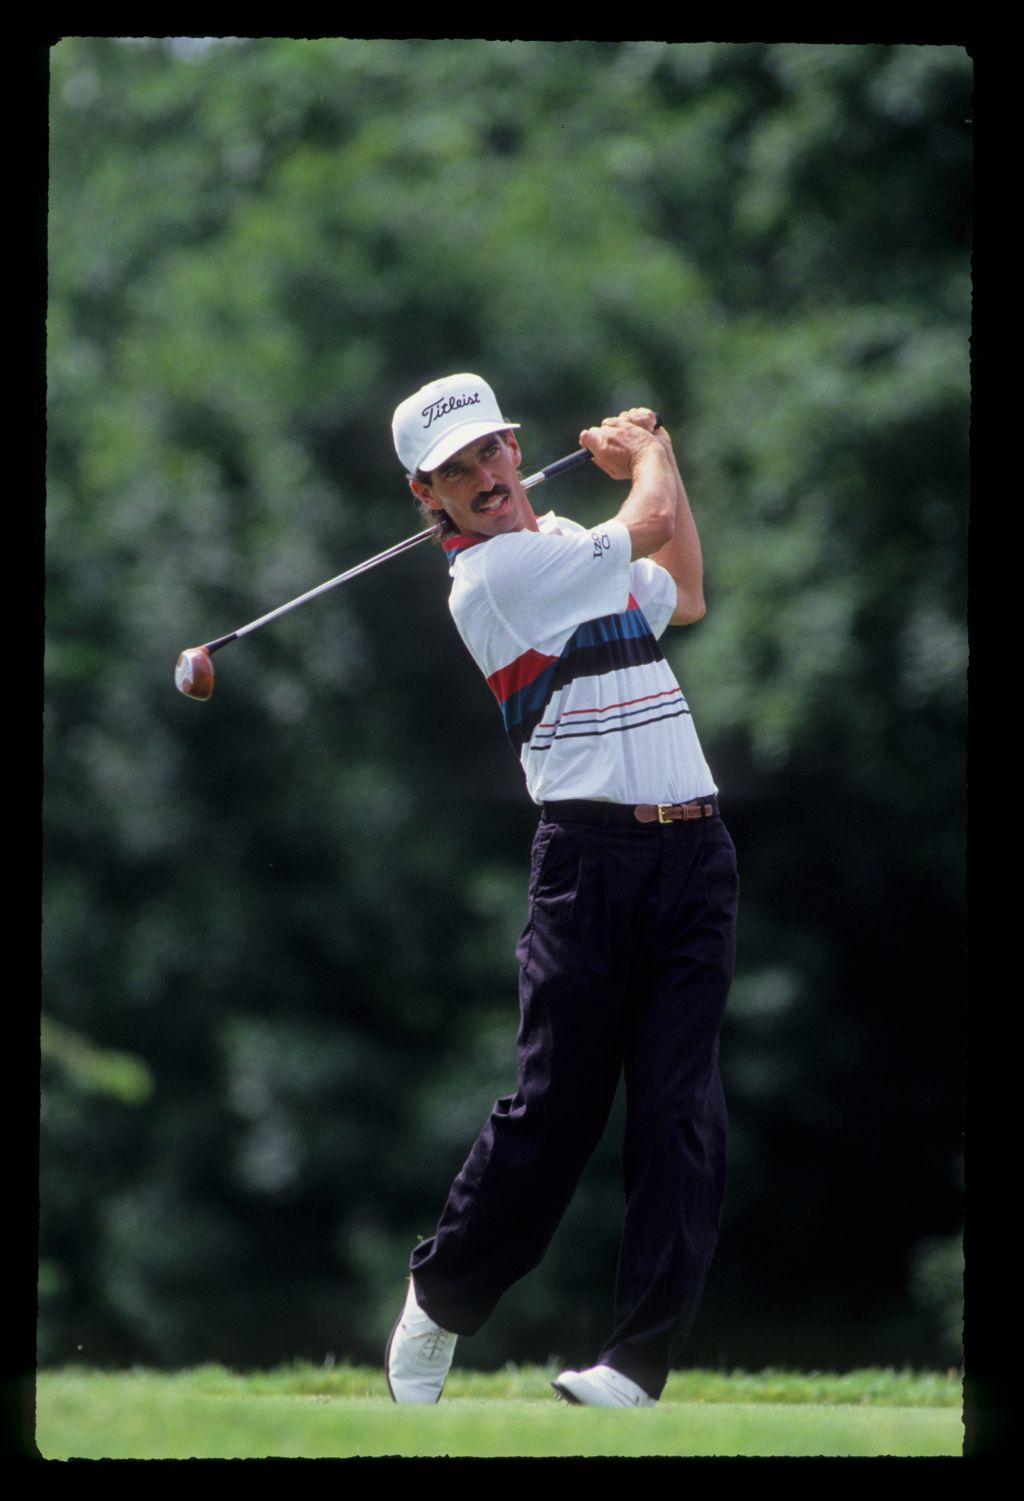 Corey Pavin following through on his way to 10th place during the 1991 US Open